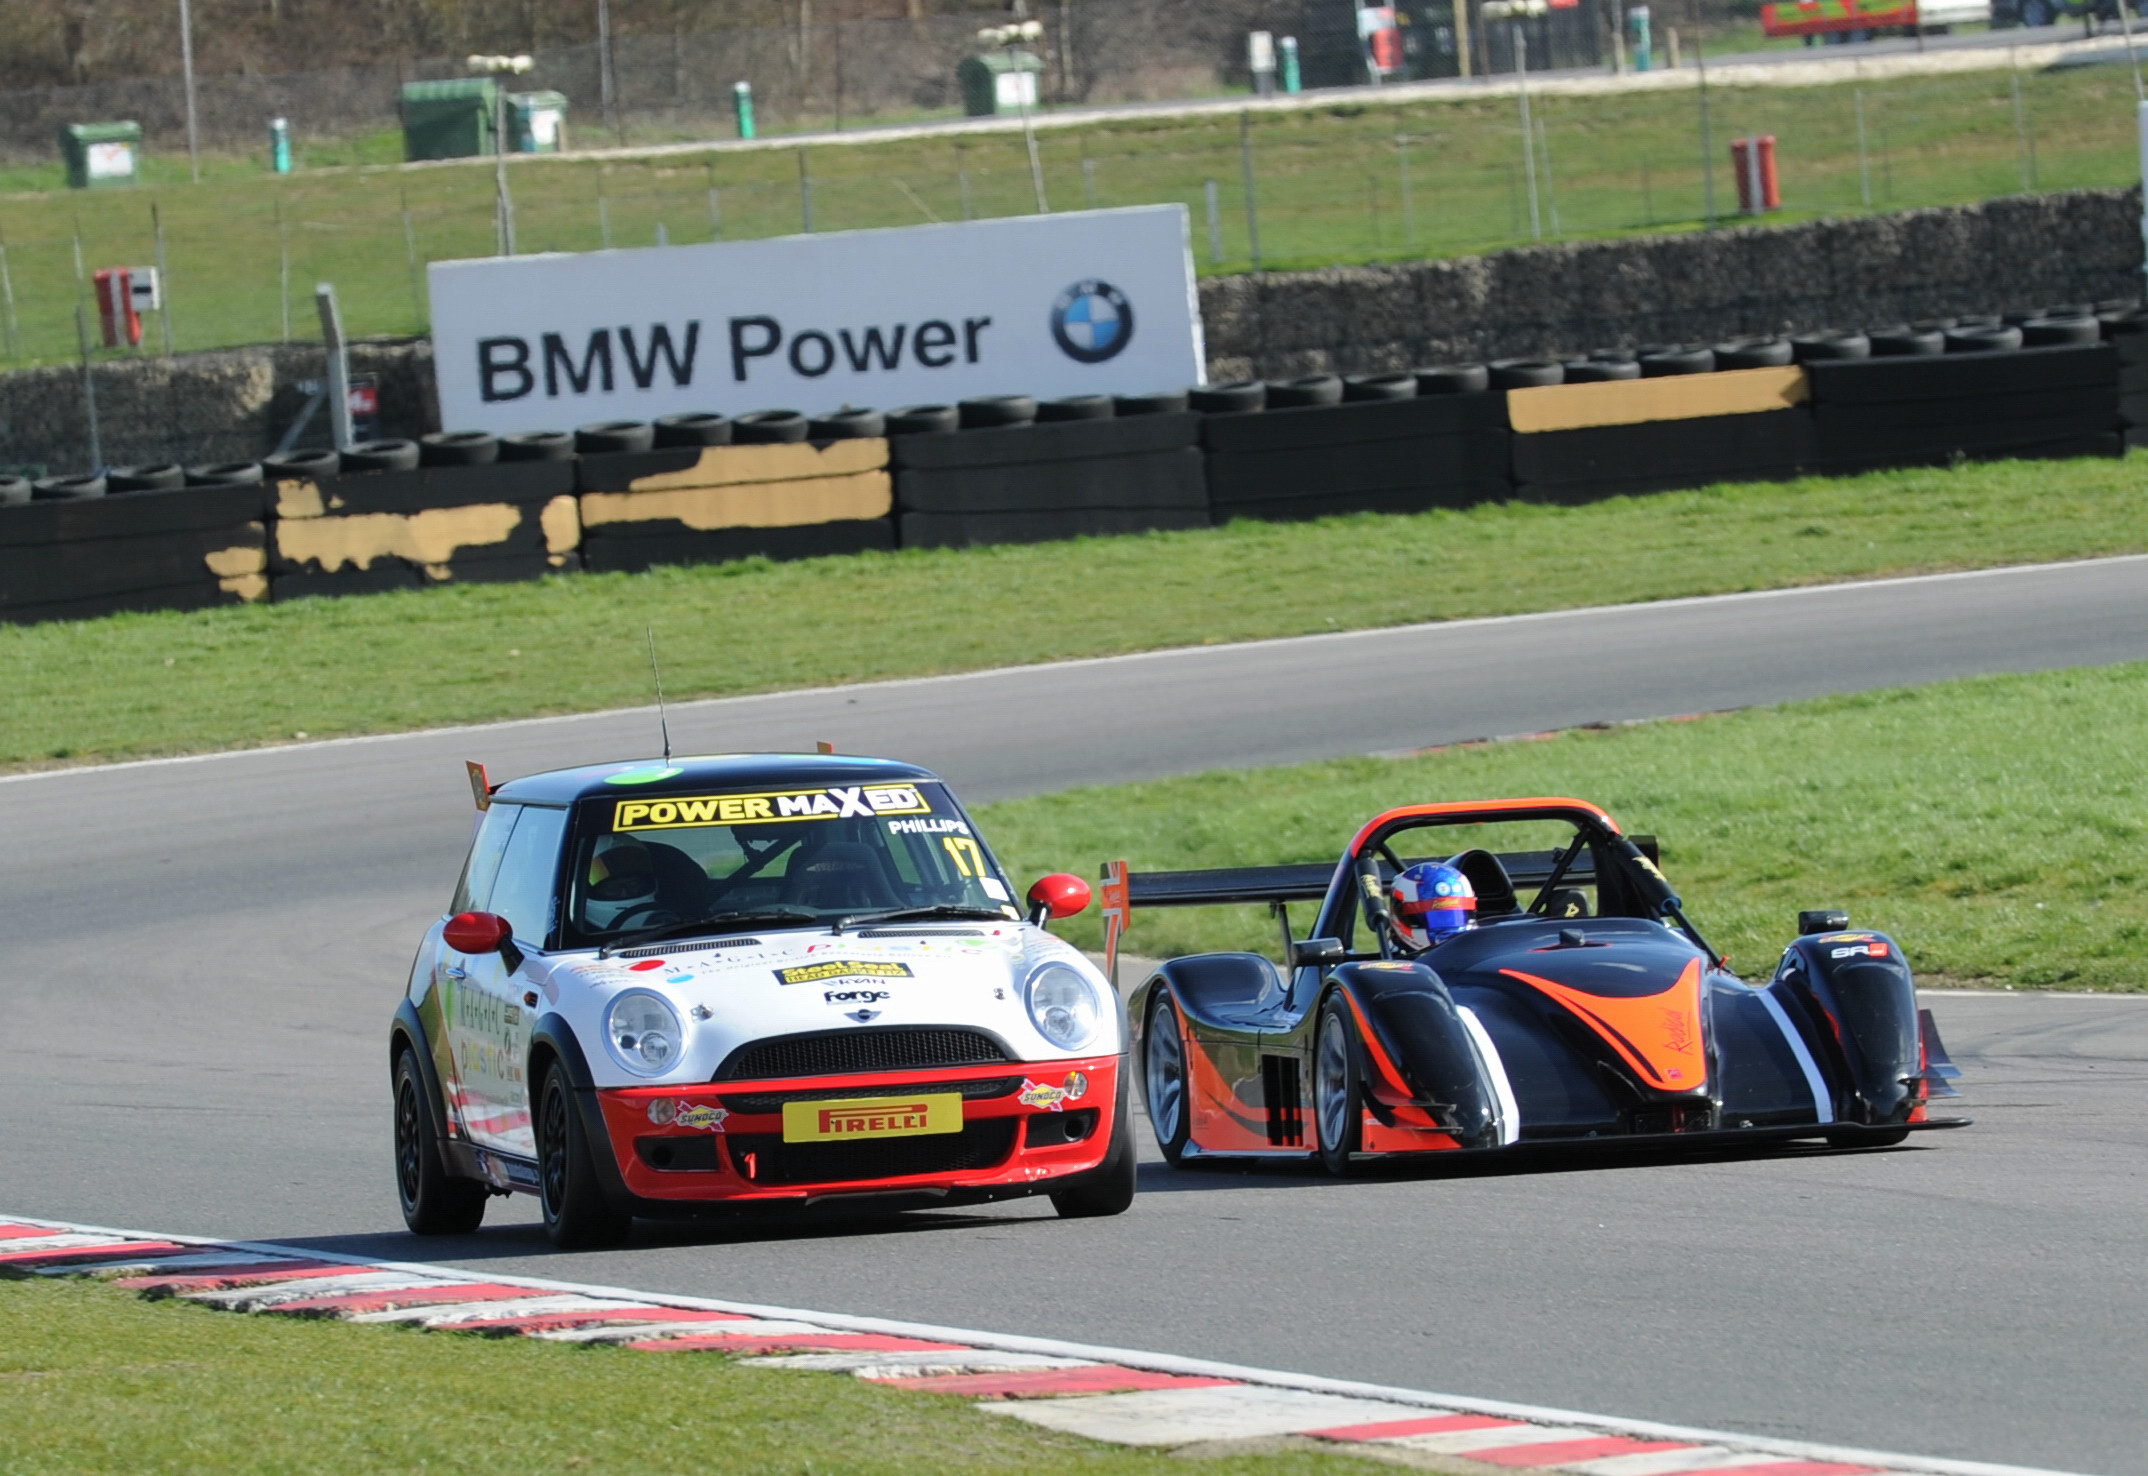 News Shopper: MSVR racing Mini and Radical cars testing